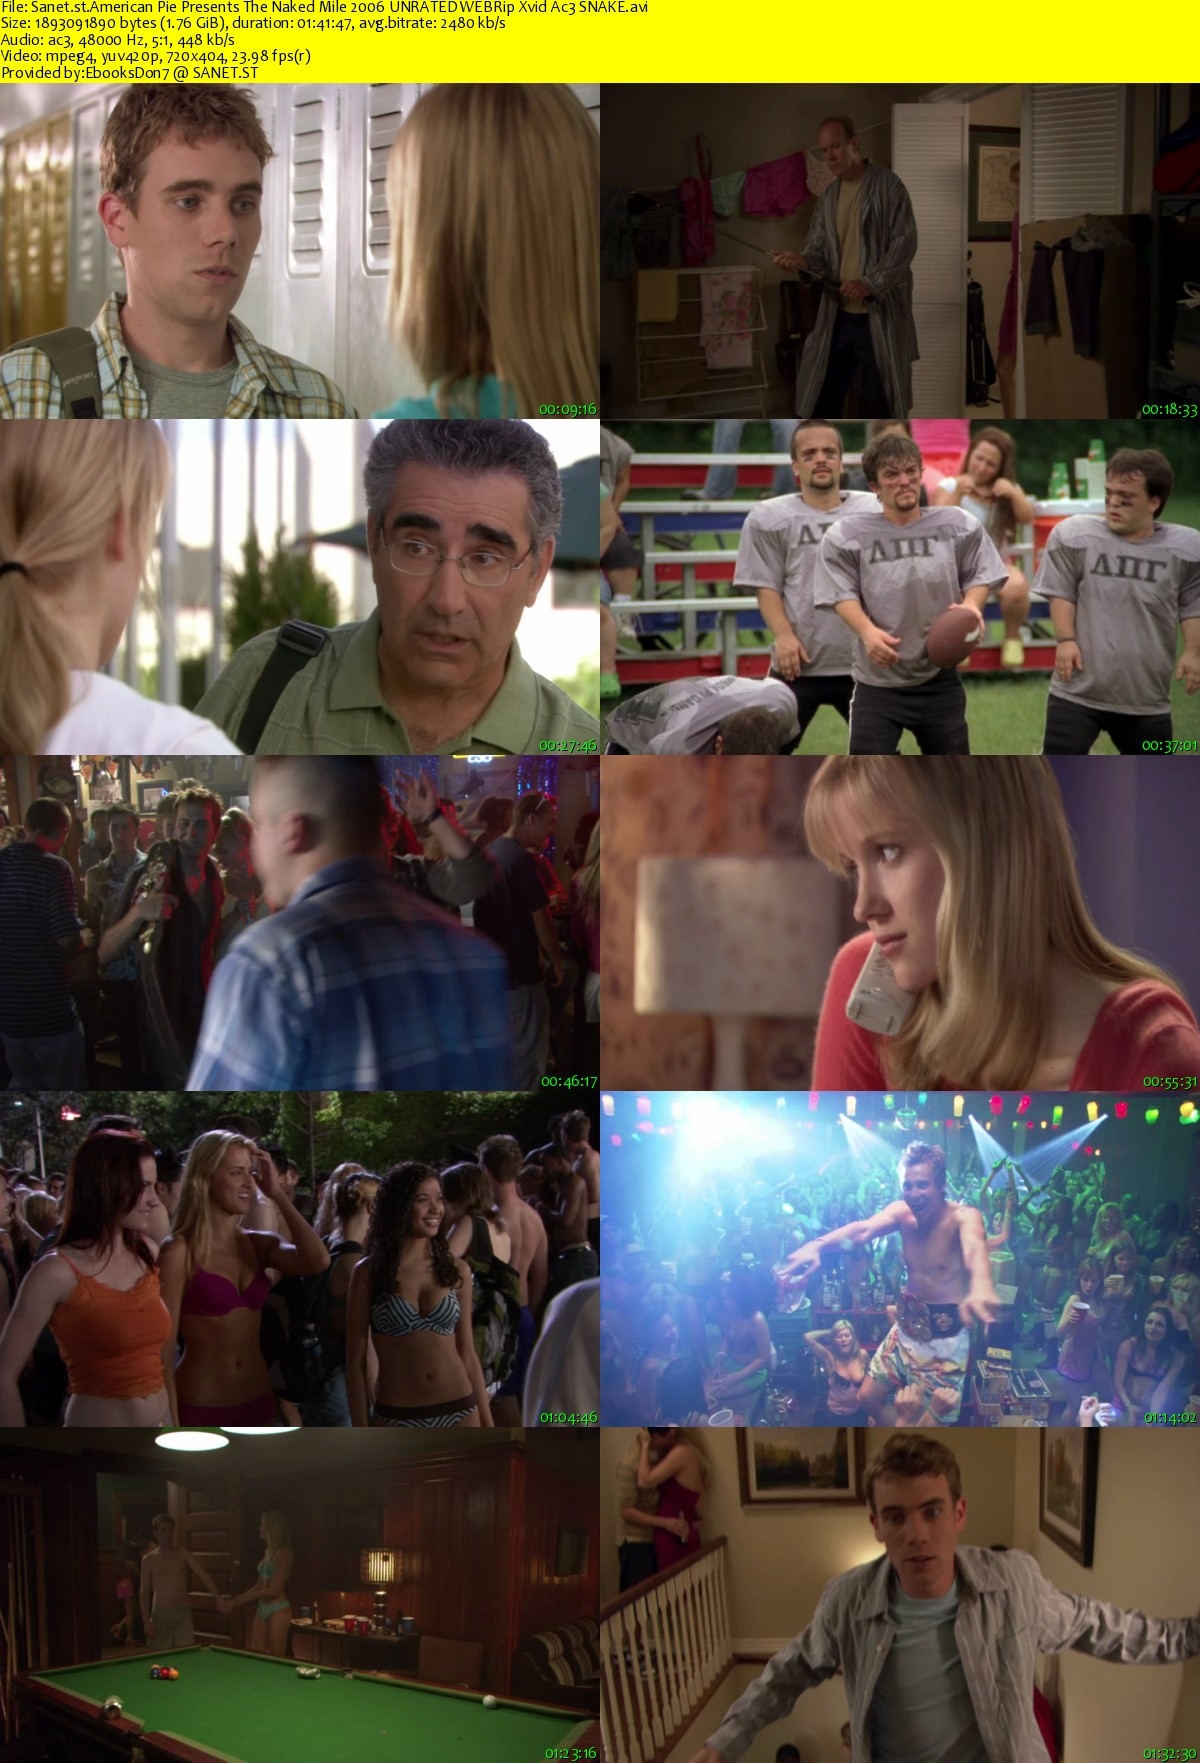 american pie the naked mile free download